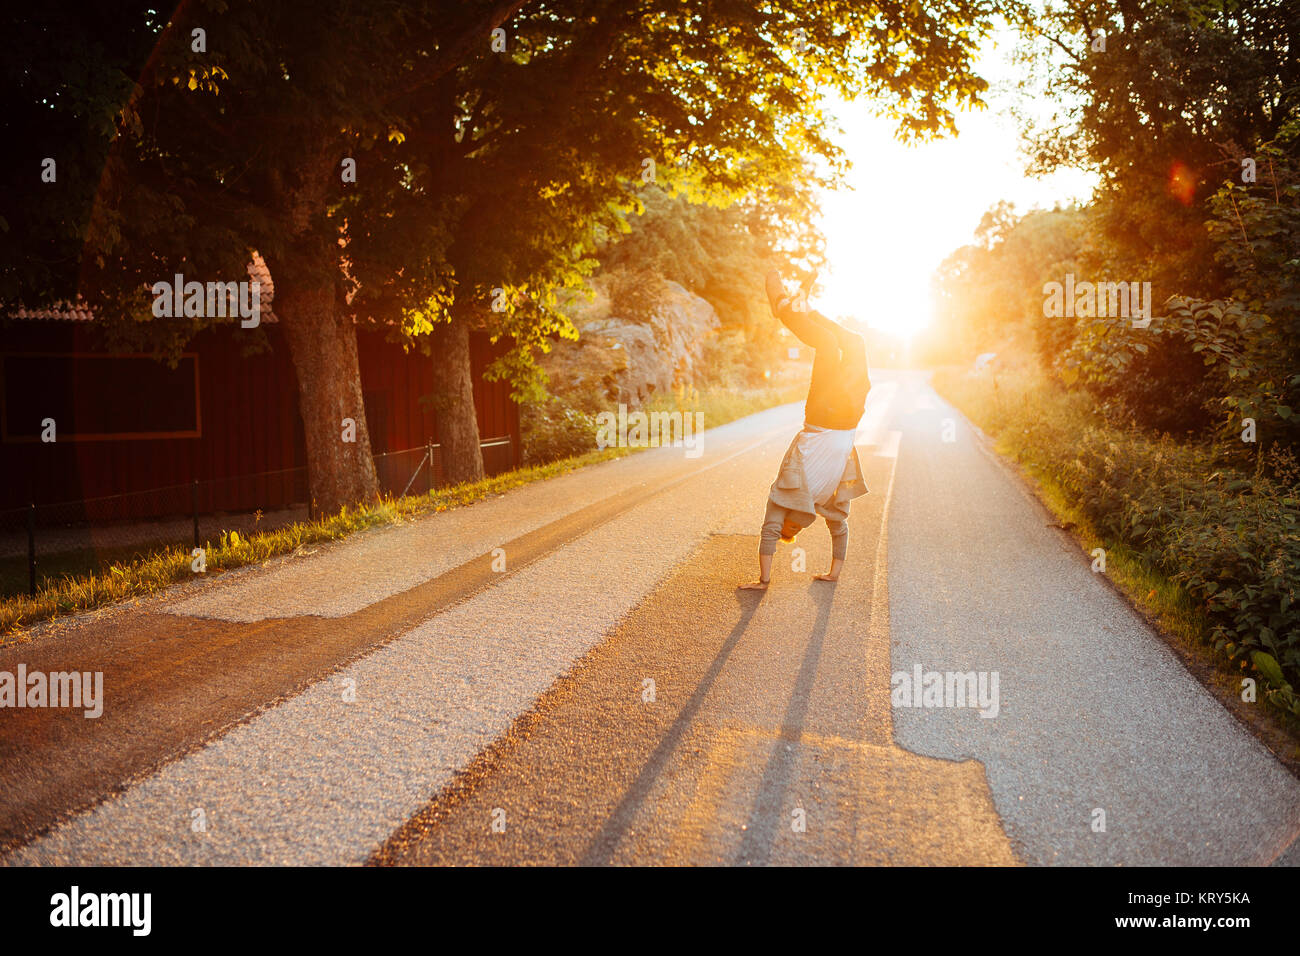 Man doing a handstand on a road at sunset in Bohuslan, Sweden - Stock Image